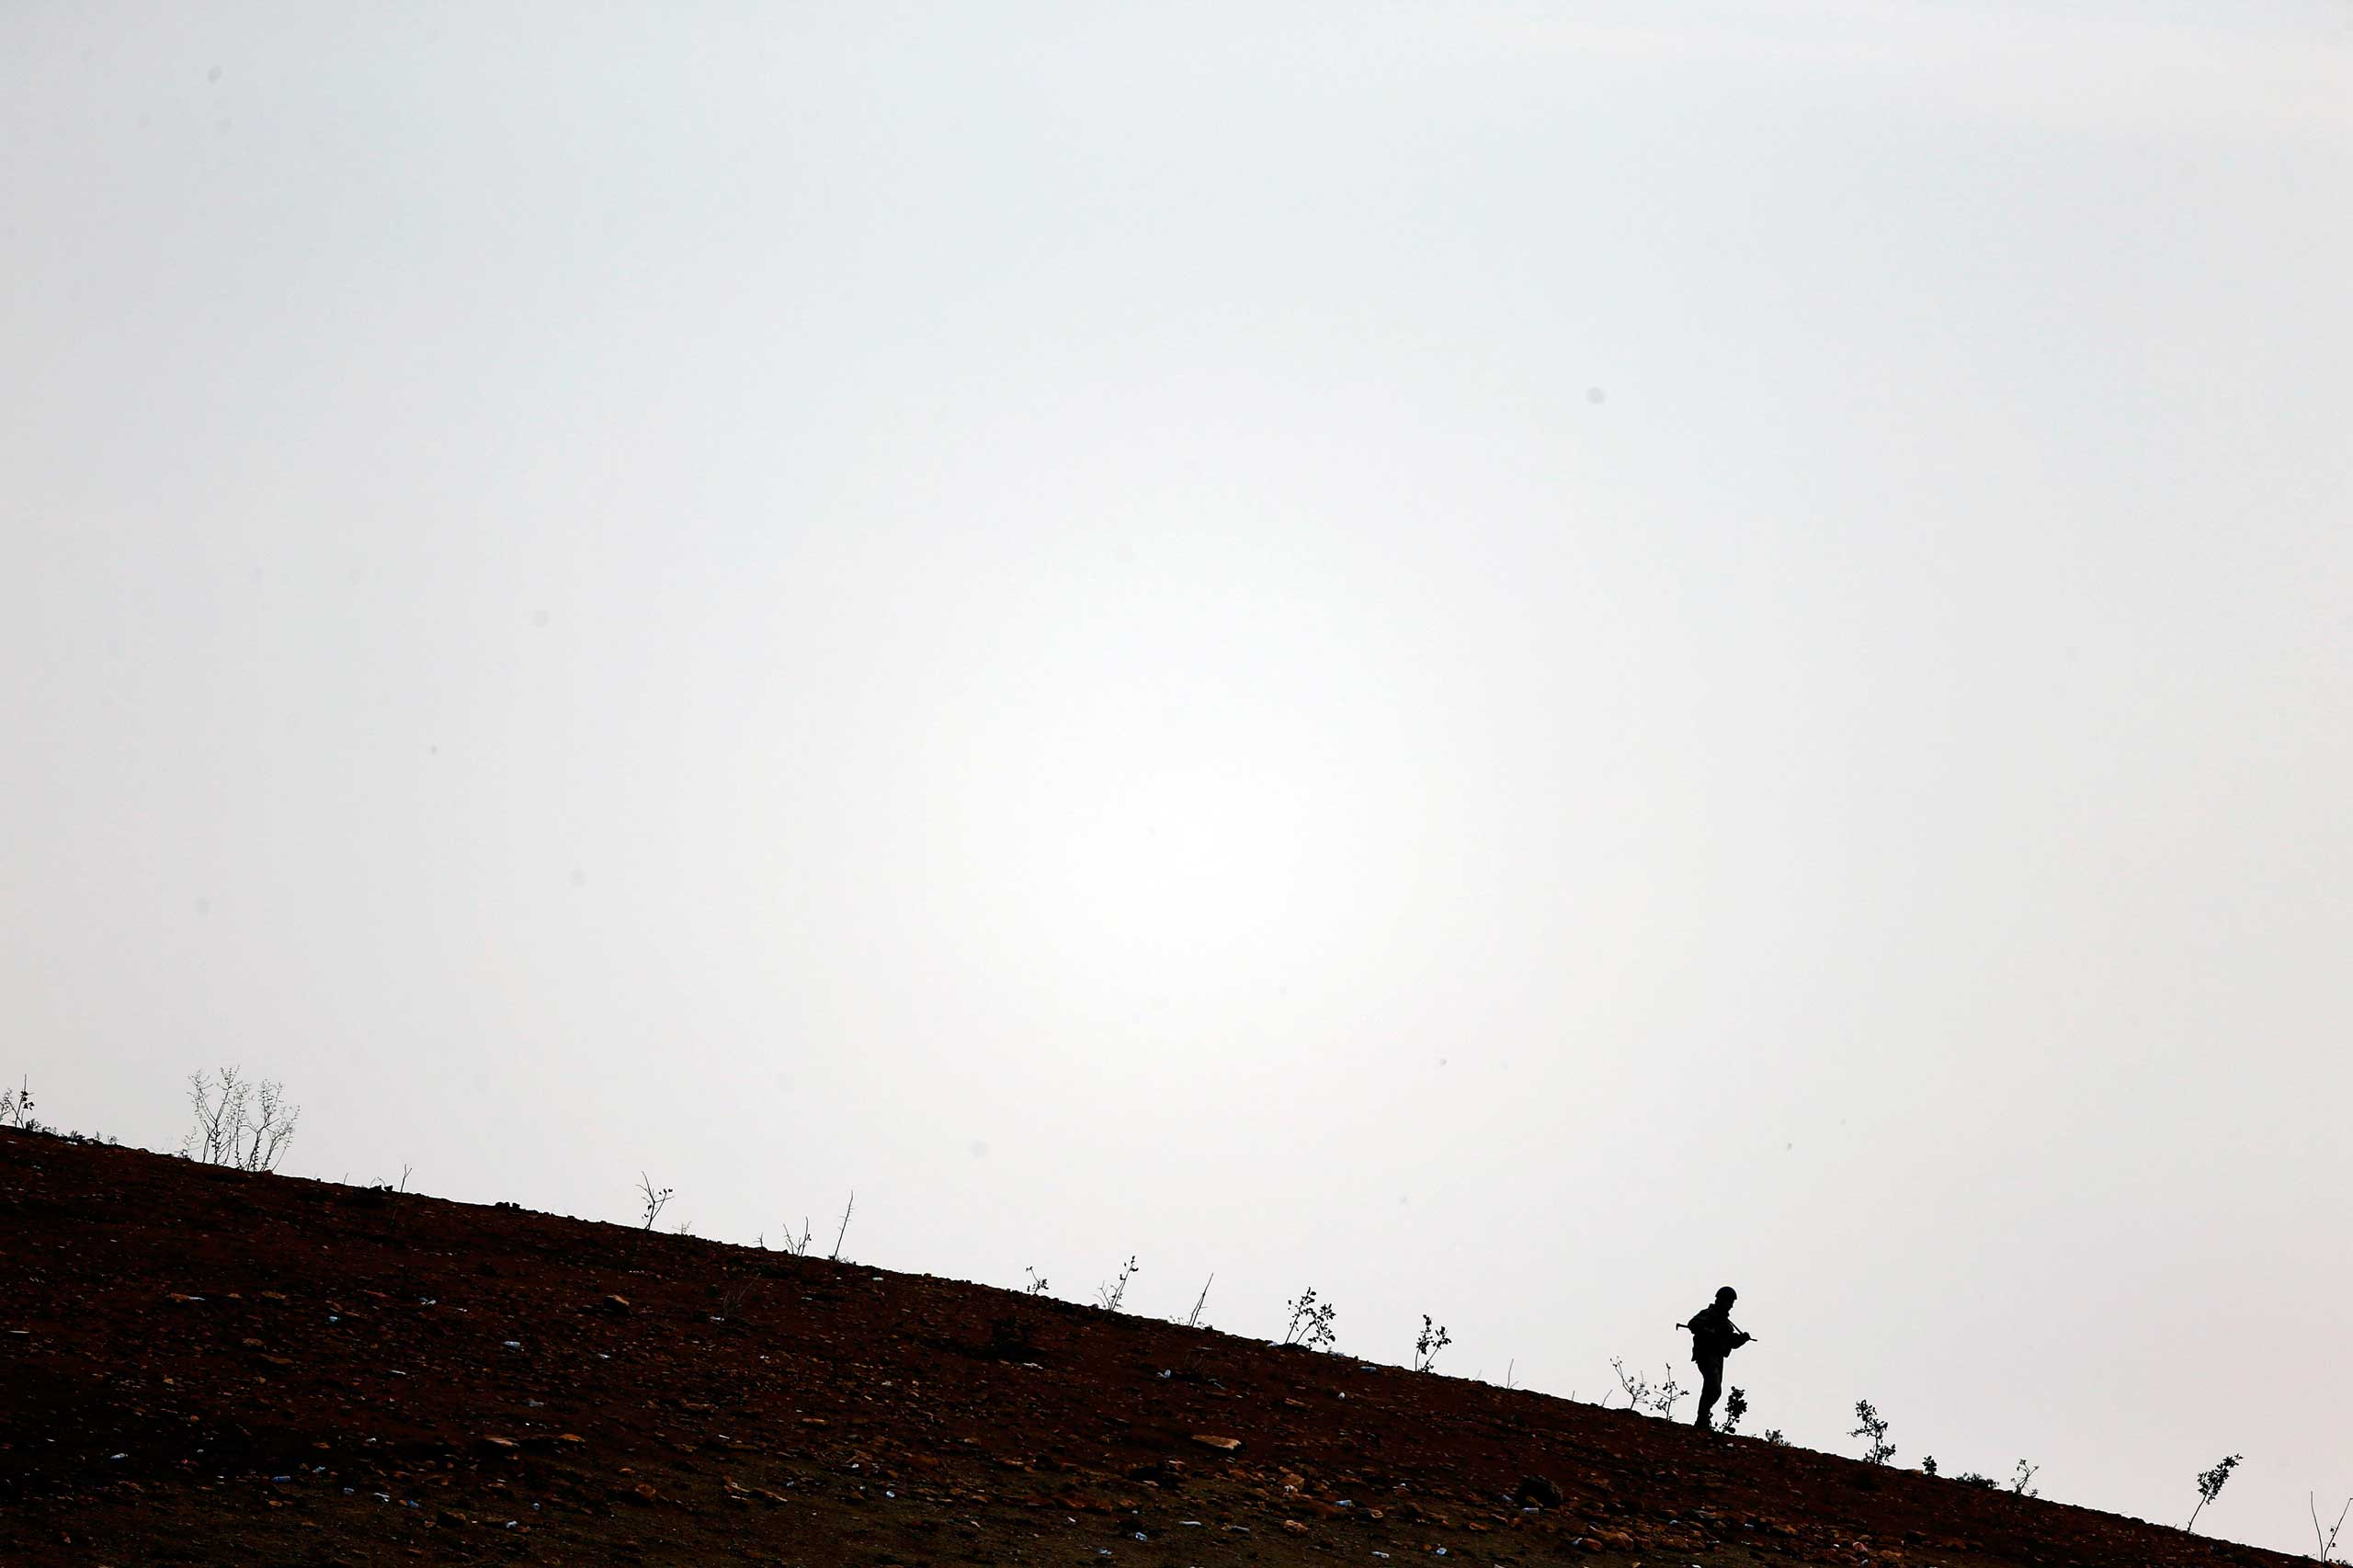 Oct. 17, 2014. A turkish soldier walks near the Mursitpinar border crossing on the Turkish-Syrian border in the southeastern town of Suruc in Sanliurfa province. A U.S. State Department official held direct talks for the first time last weekend with a Syrian Kurdish group involved in the fight against Islamic State in Syria, including the besieged town of Kobani, the State Department said on Thursday.